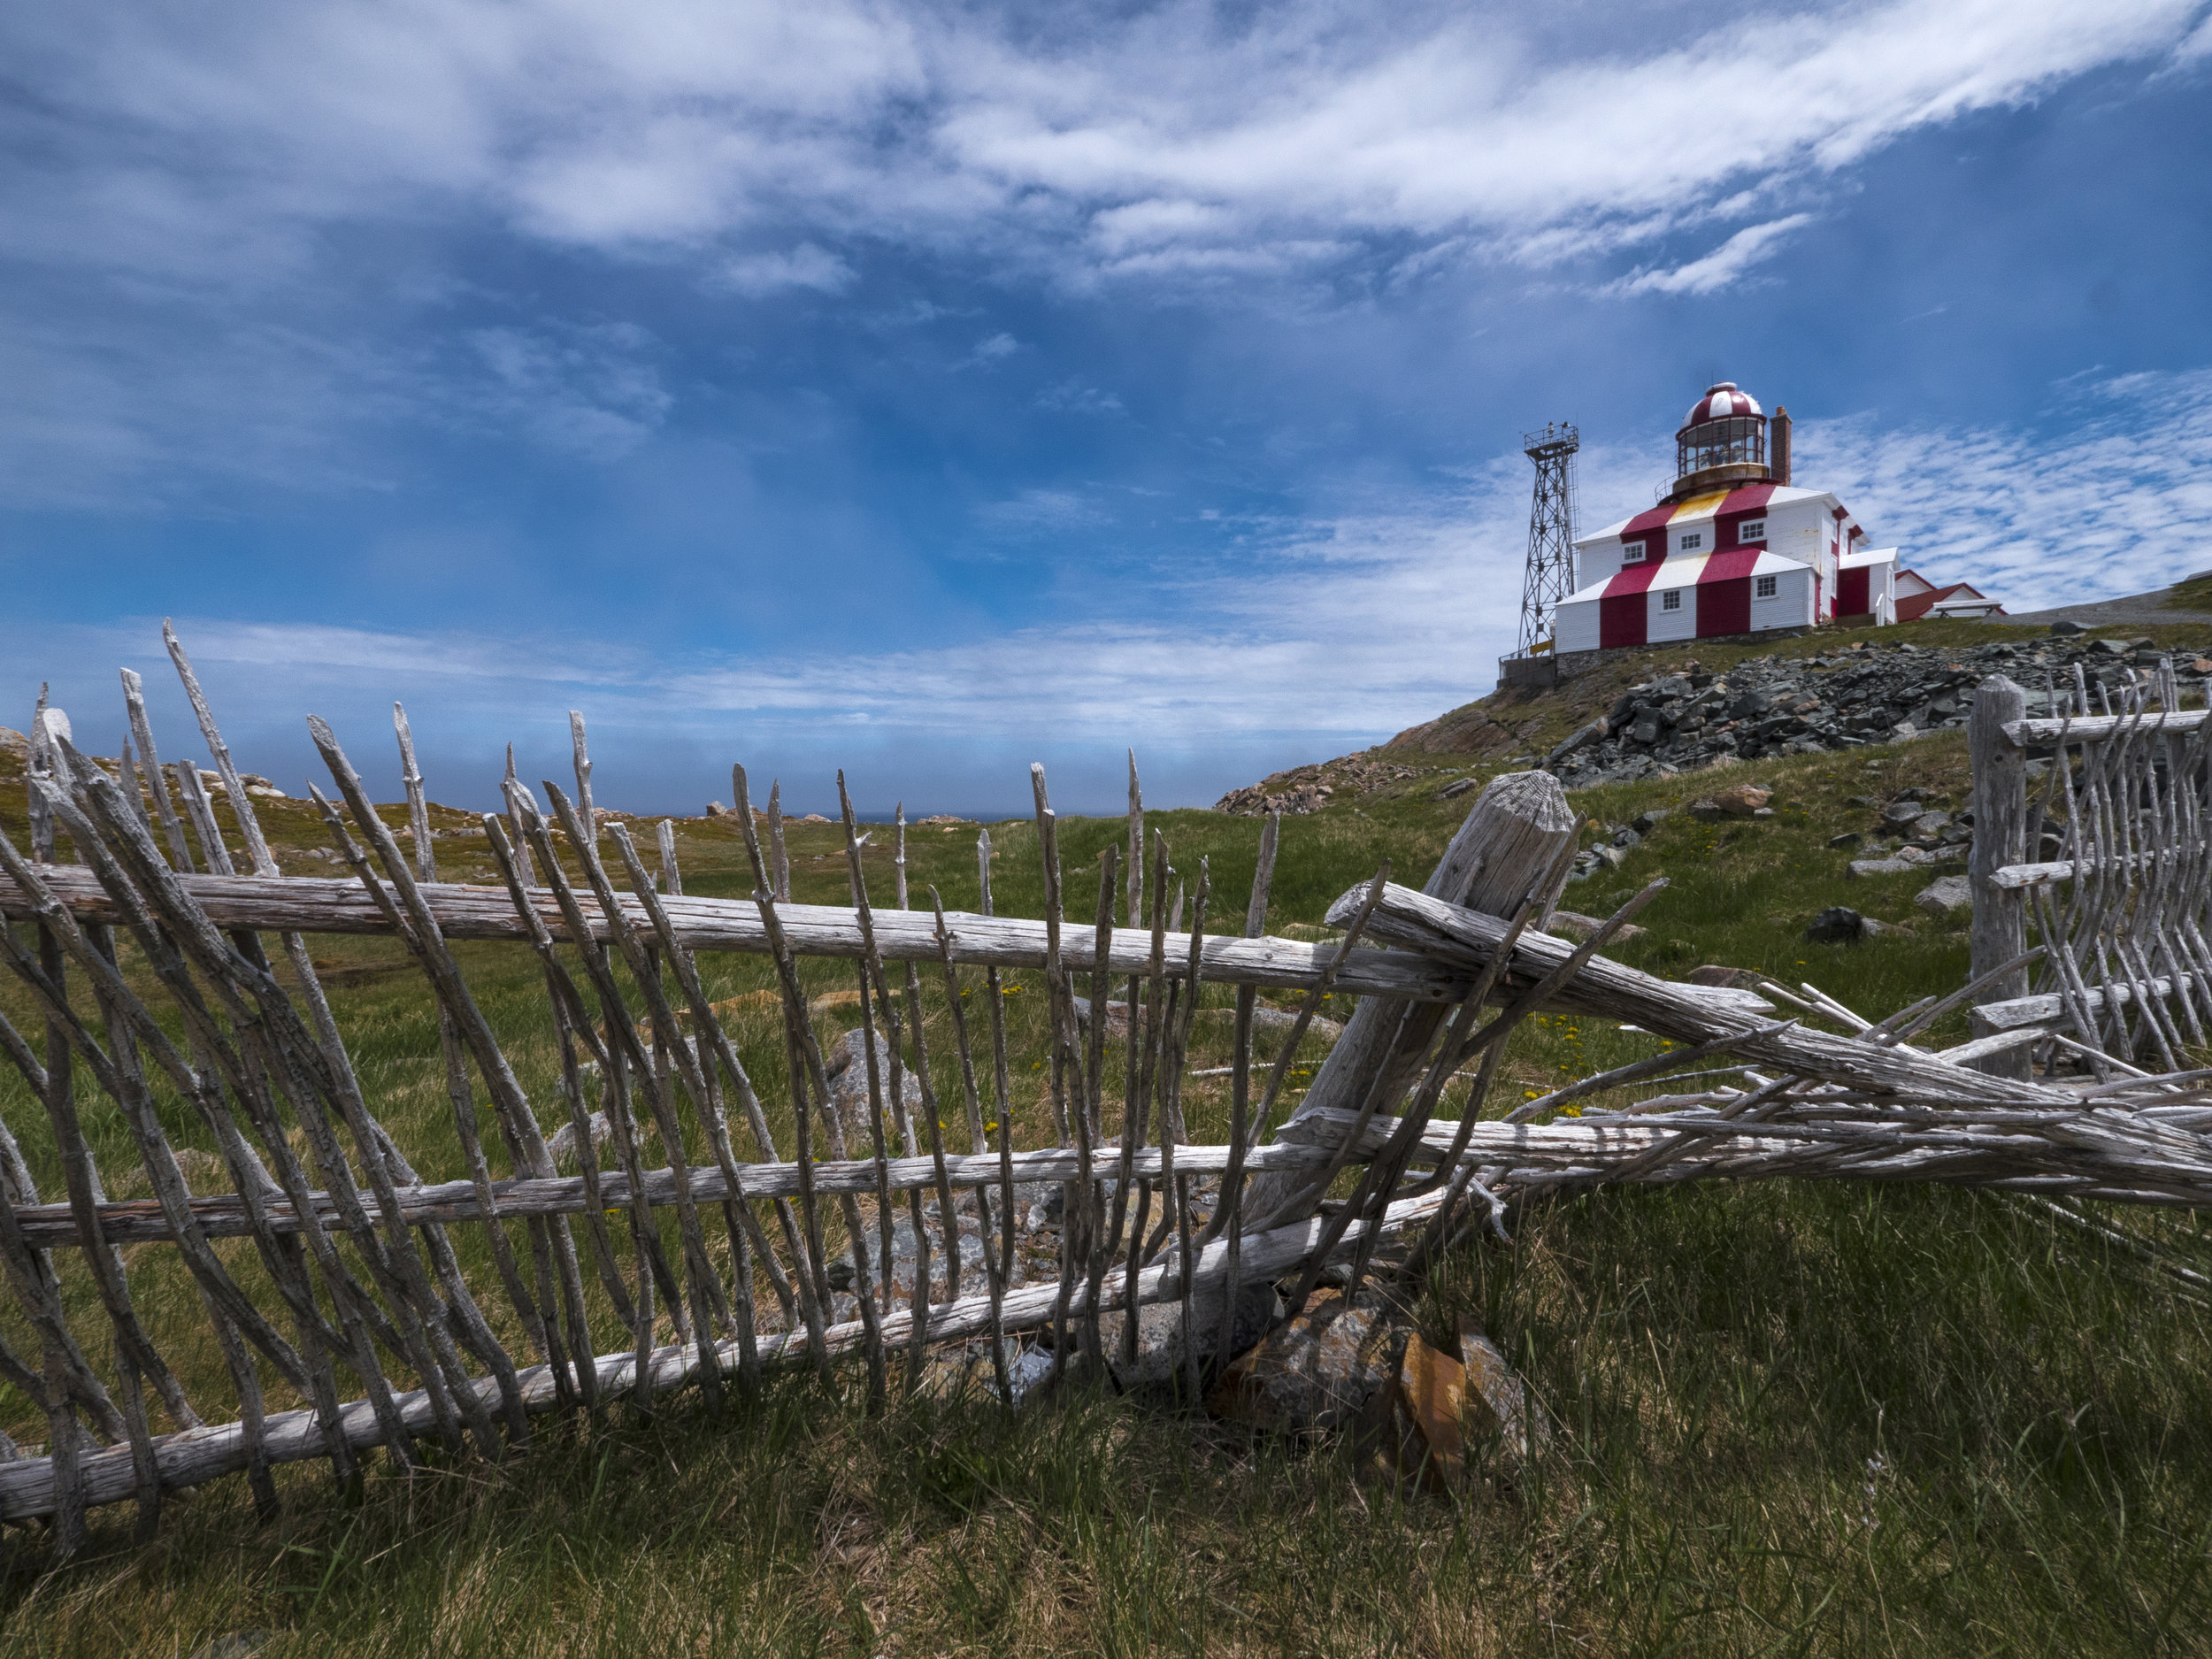 muench-workshops-kevin-pepper-cape bonavista lighthouse 2.jpg